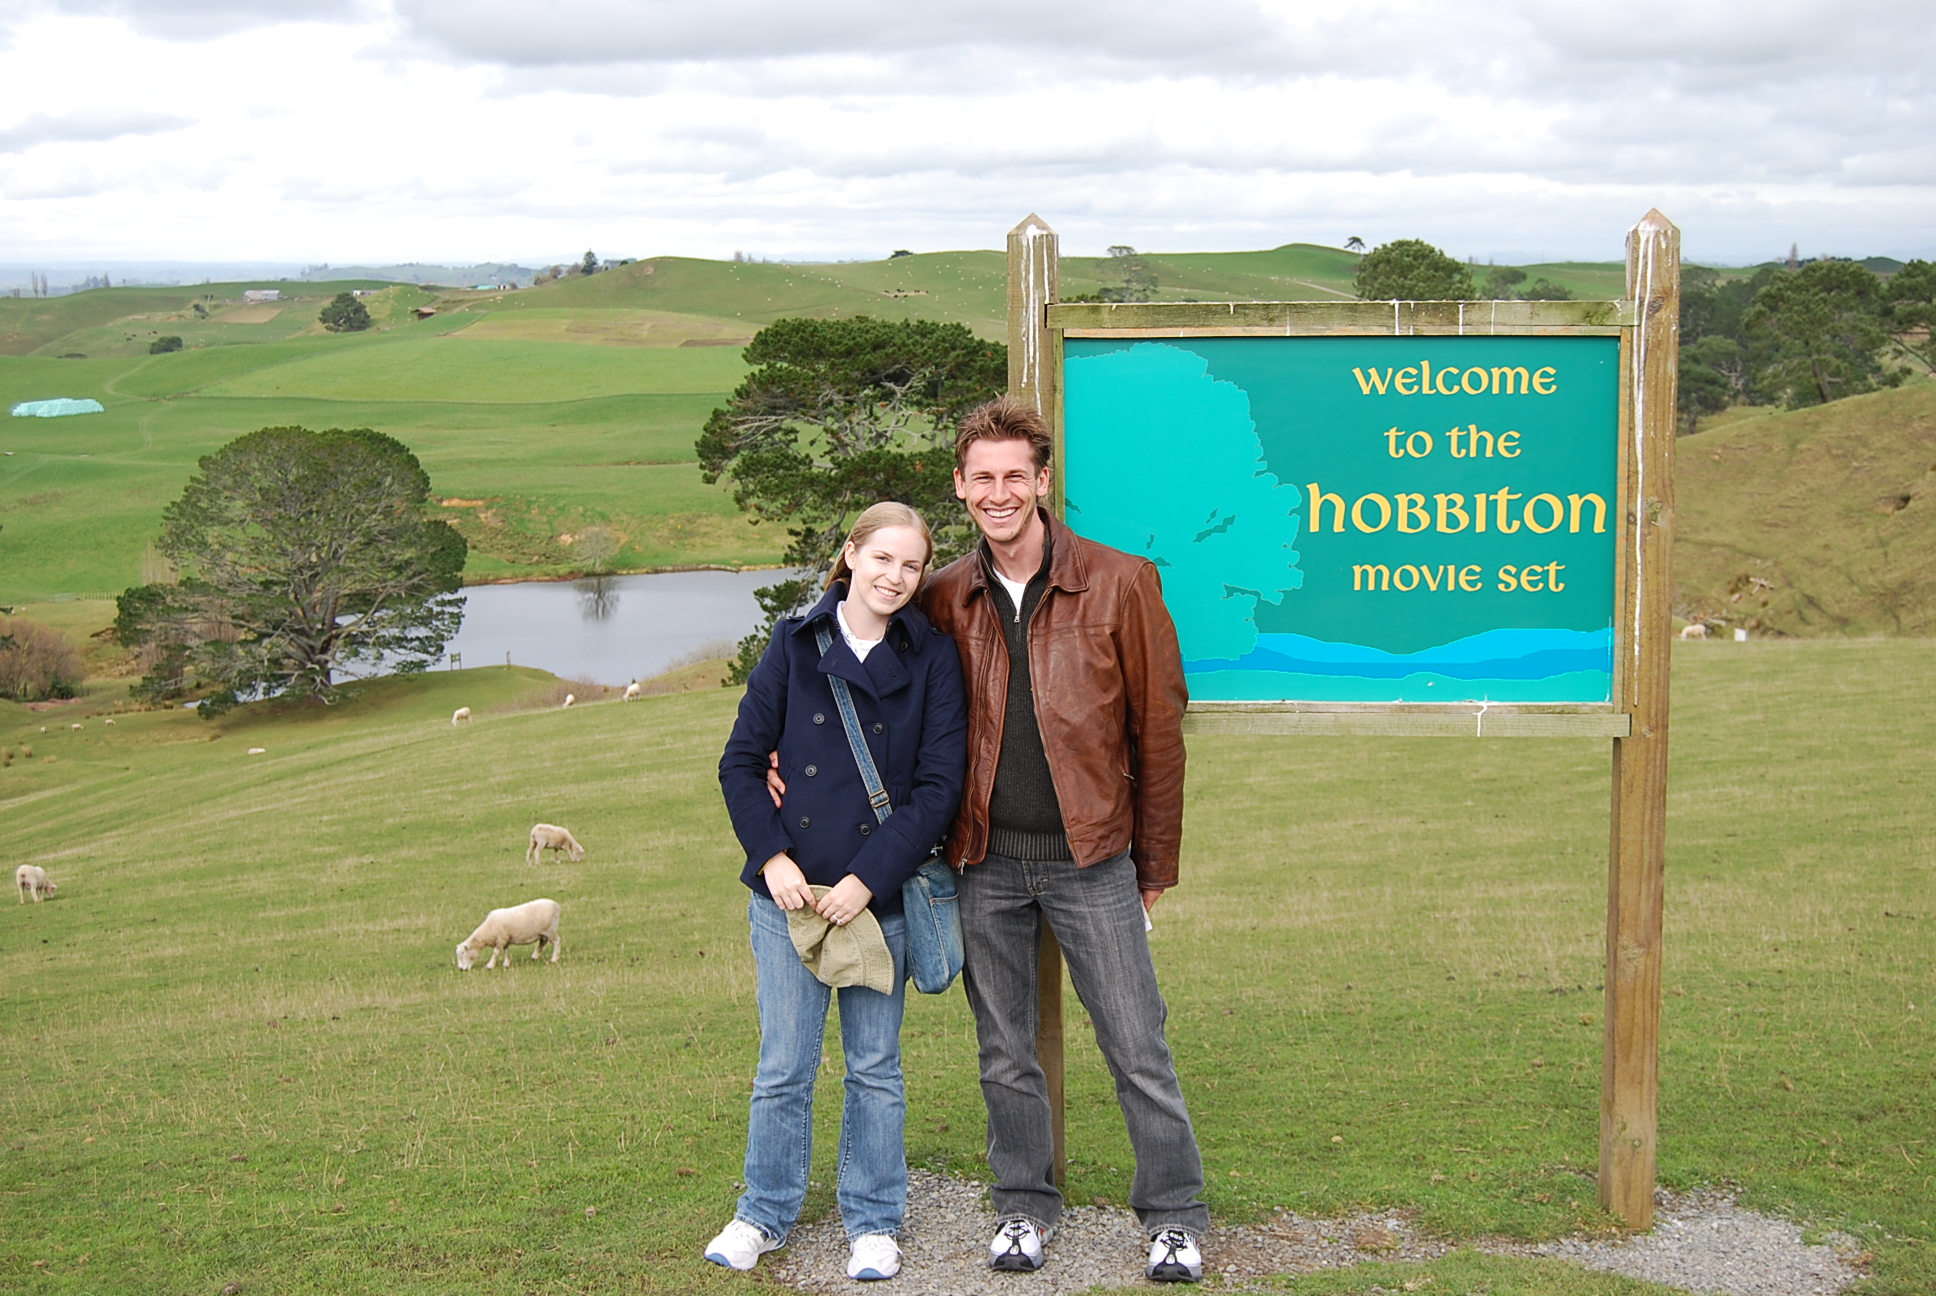 At the Hobbiton movie set in Matamata, New Zealand